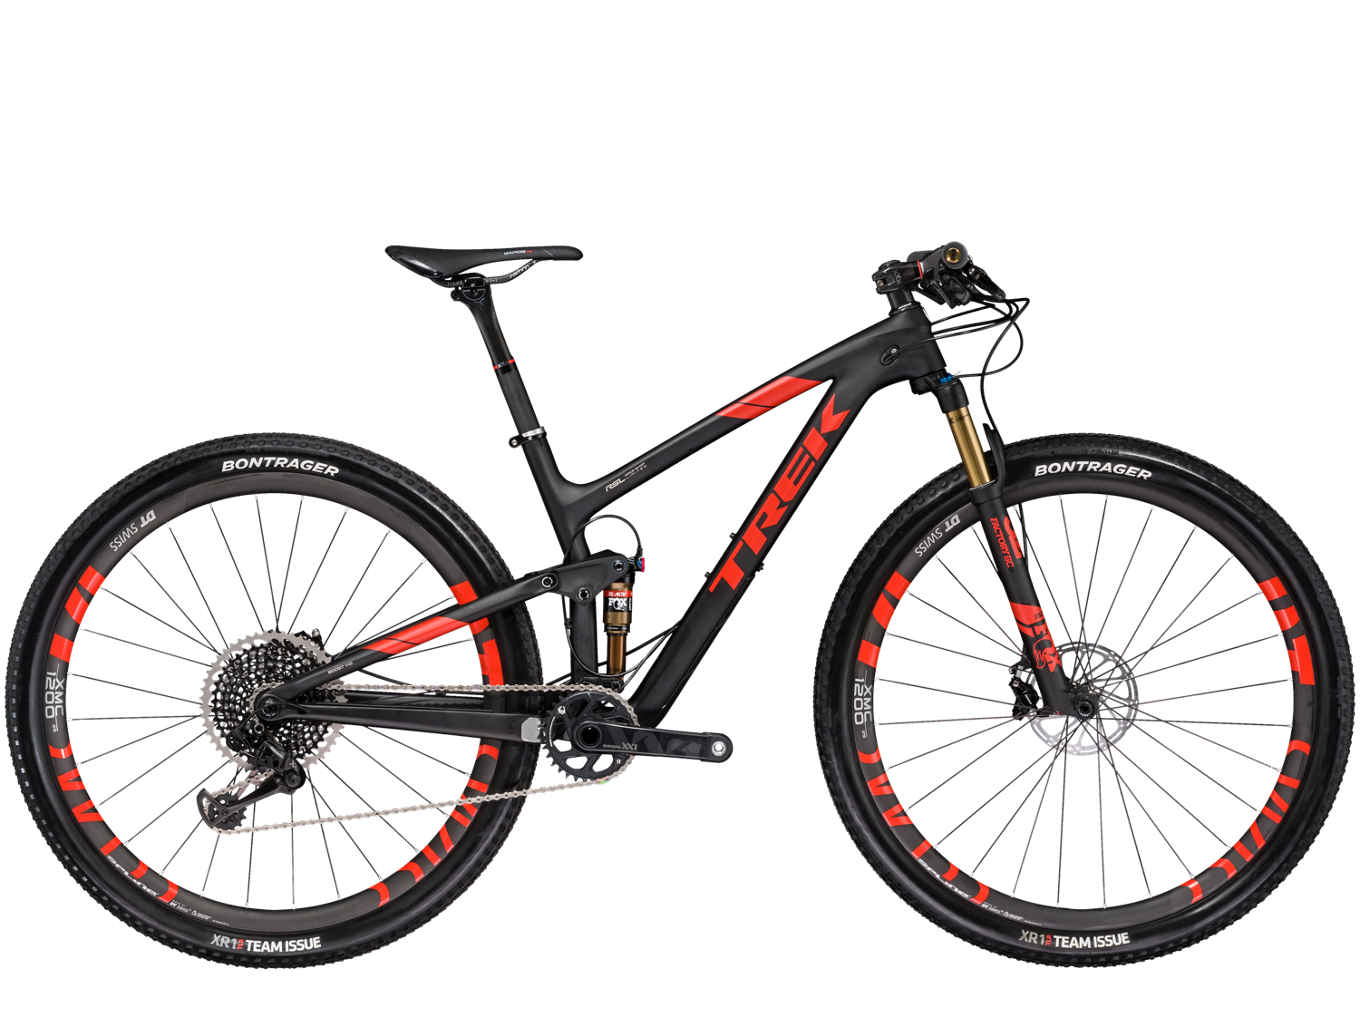 Top Fuel 9.9 Race Shop Limited | Trek Bikes